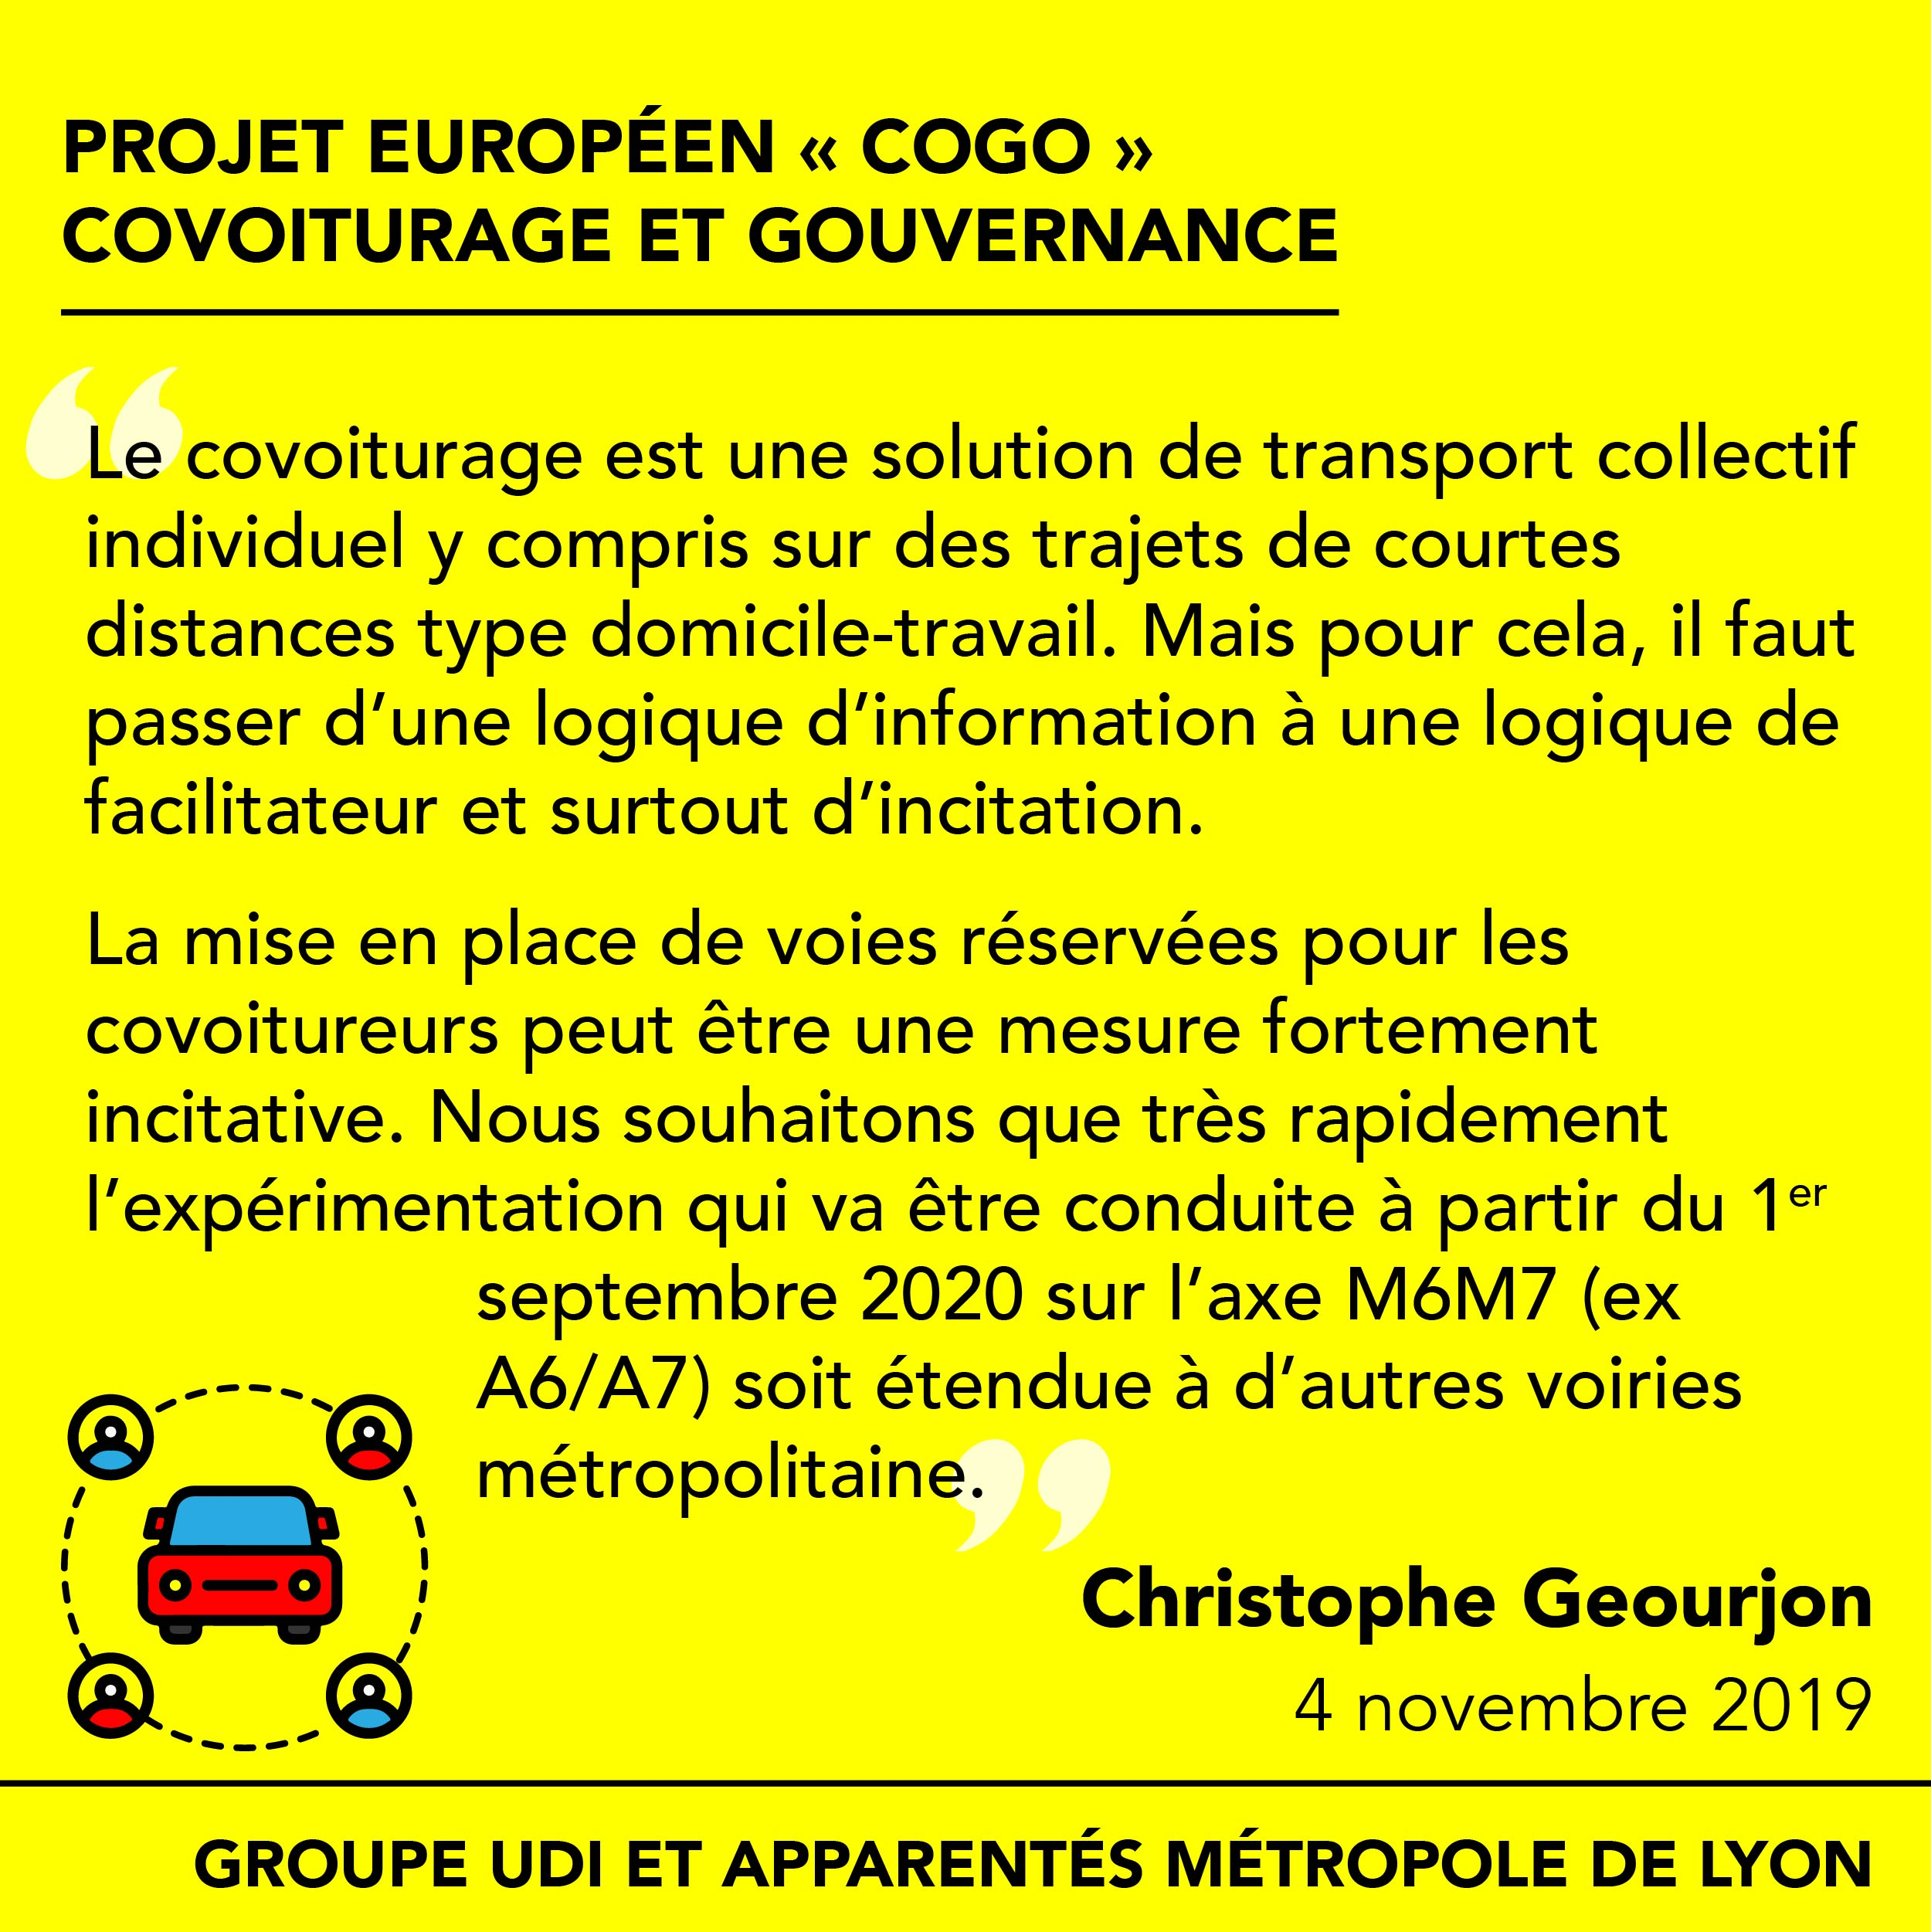 Covoiturage : pour la mise en place de mesures fortement incitatives